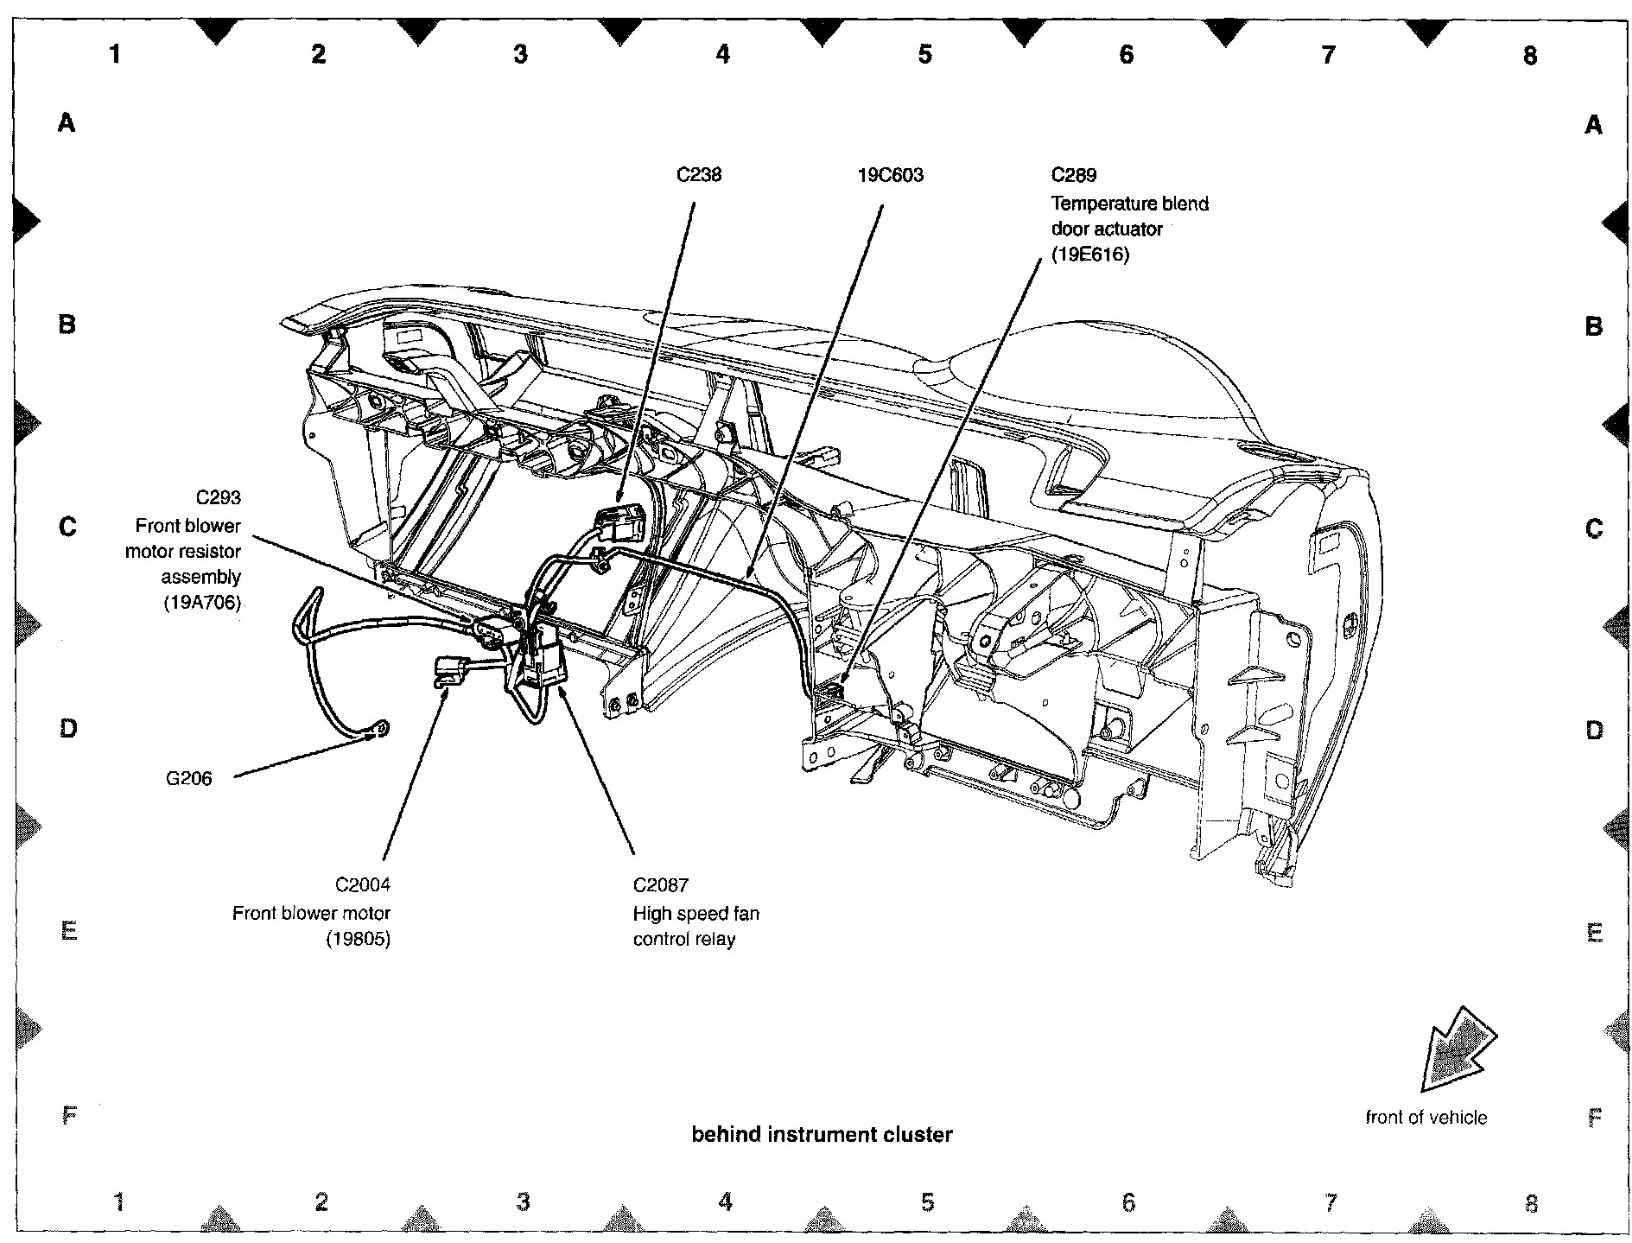 96 Mercury Mystique Engine Diagram together with Chrysler 3 5l V6 Sohc Engine Diagram as well 283130 00 Mustang Fuel Pump Issue as well 99 Ford Contour V6 Engine Diagram likewise 3u9ug 1995 Ford Thunderbird Lx 4 6 V8 Starting Problems Morning. on 96 ford contour problems